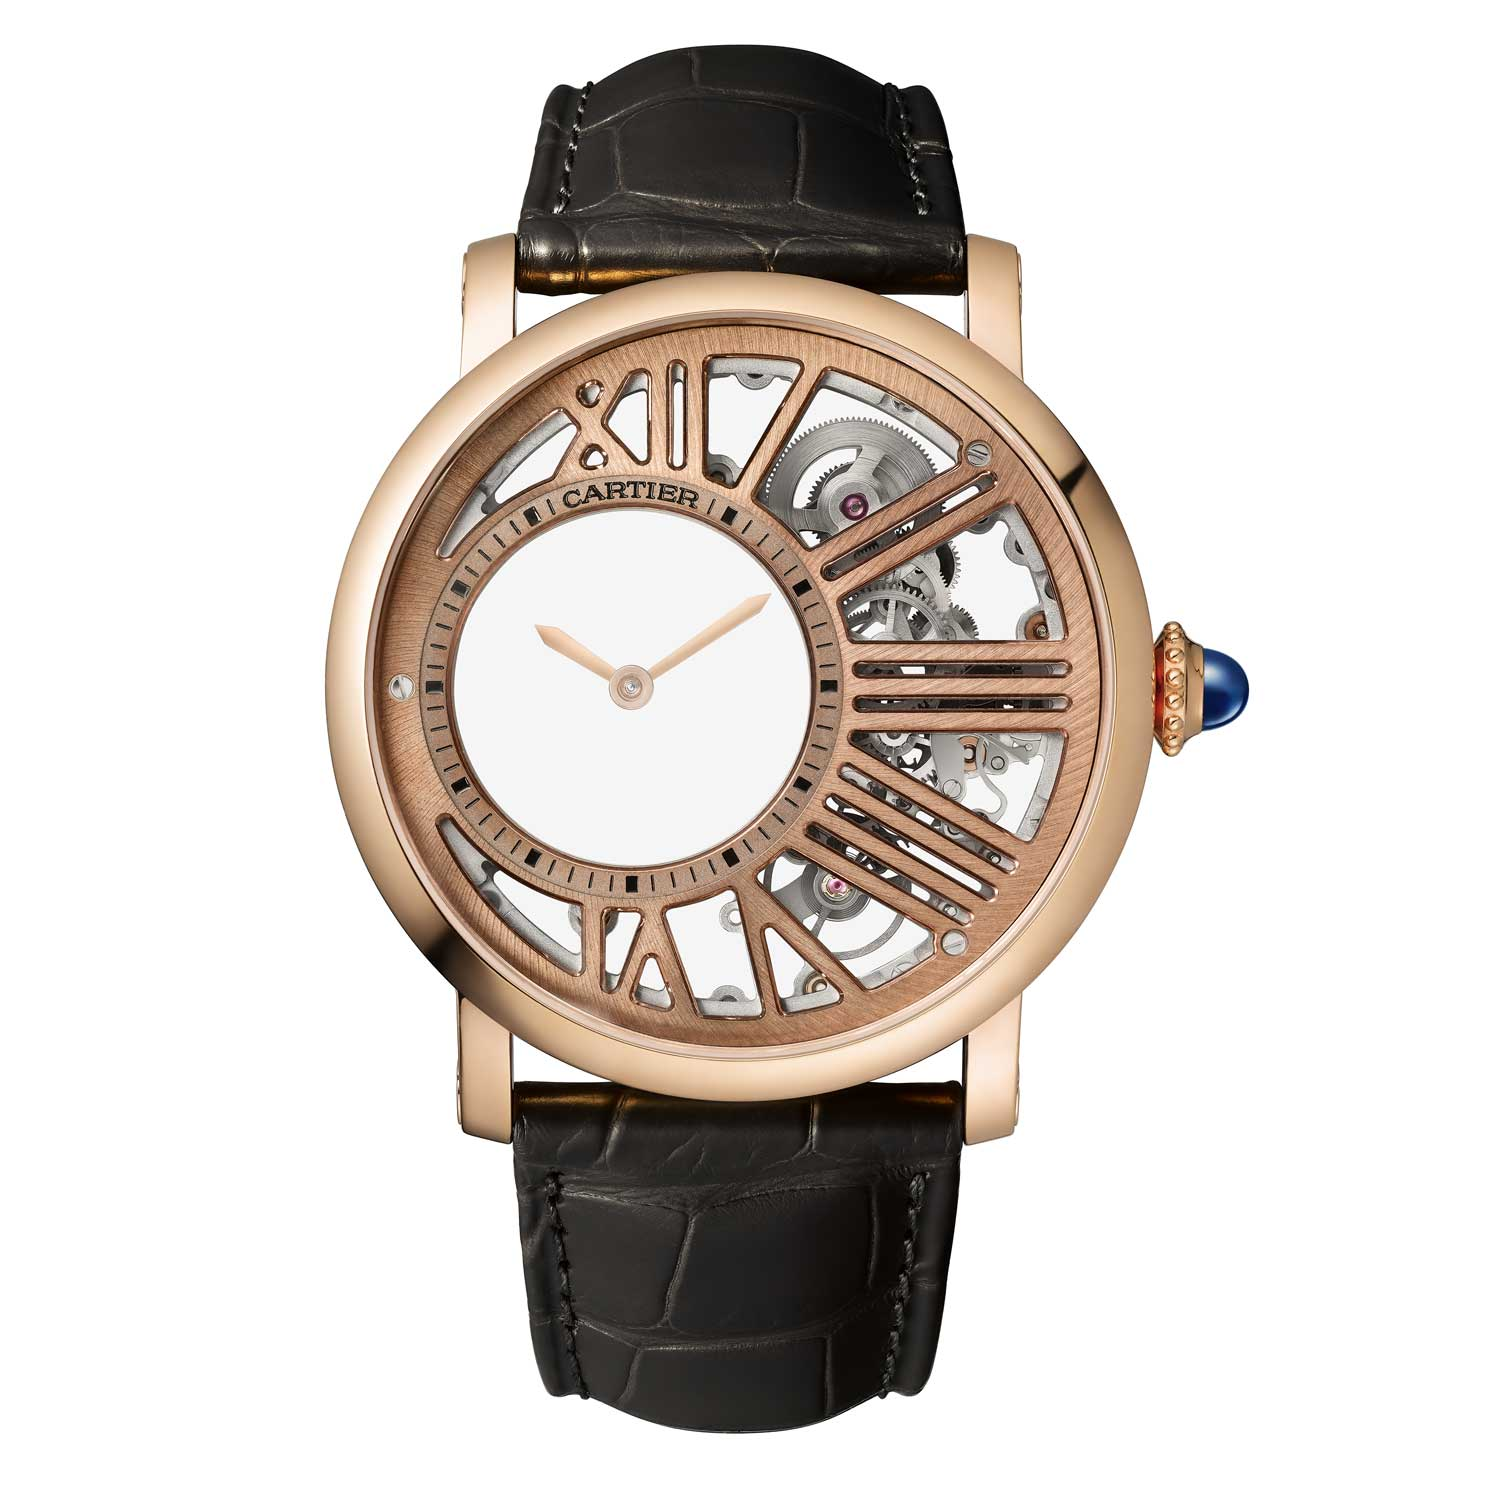 The Rotonde de Cartier Mysterious Hour Skeleton